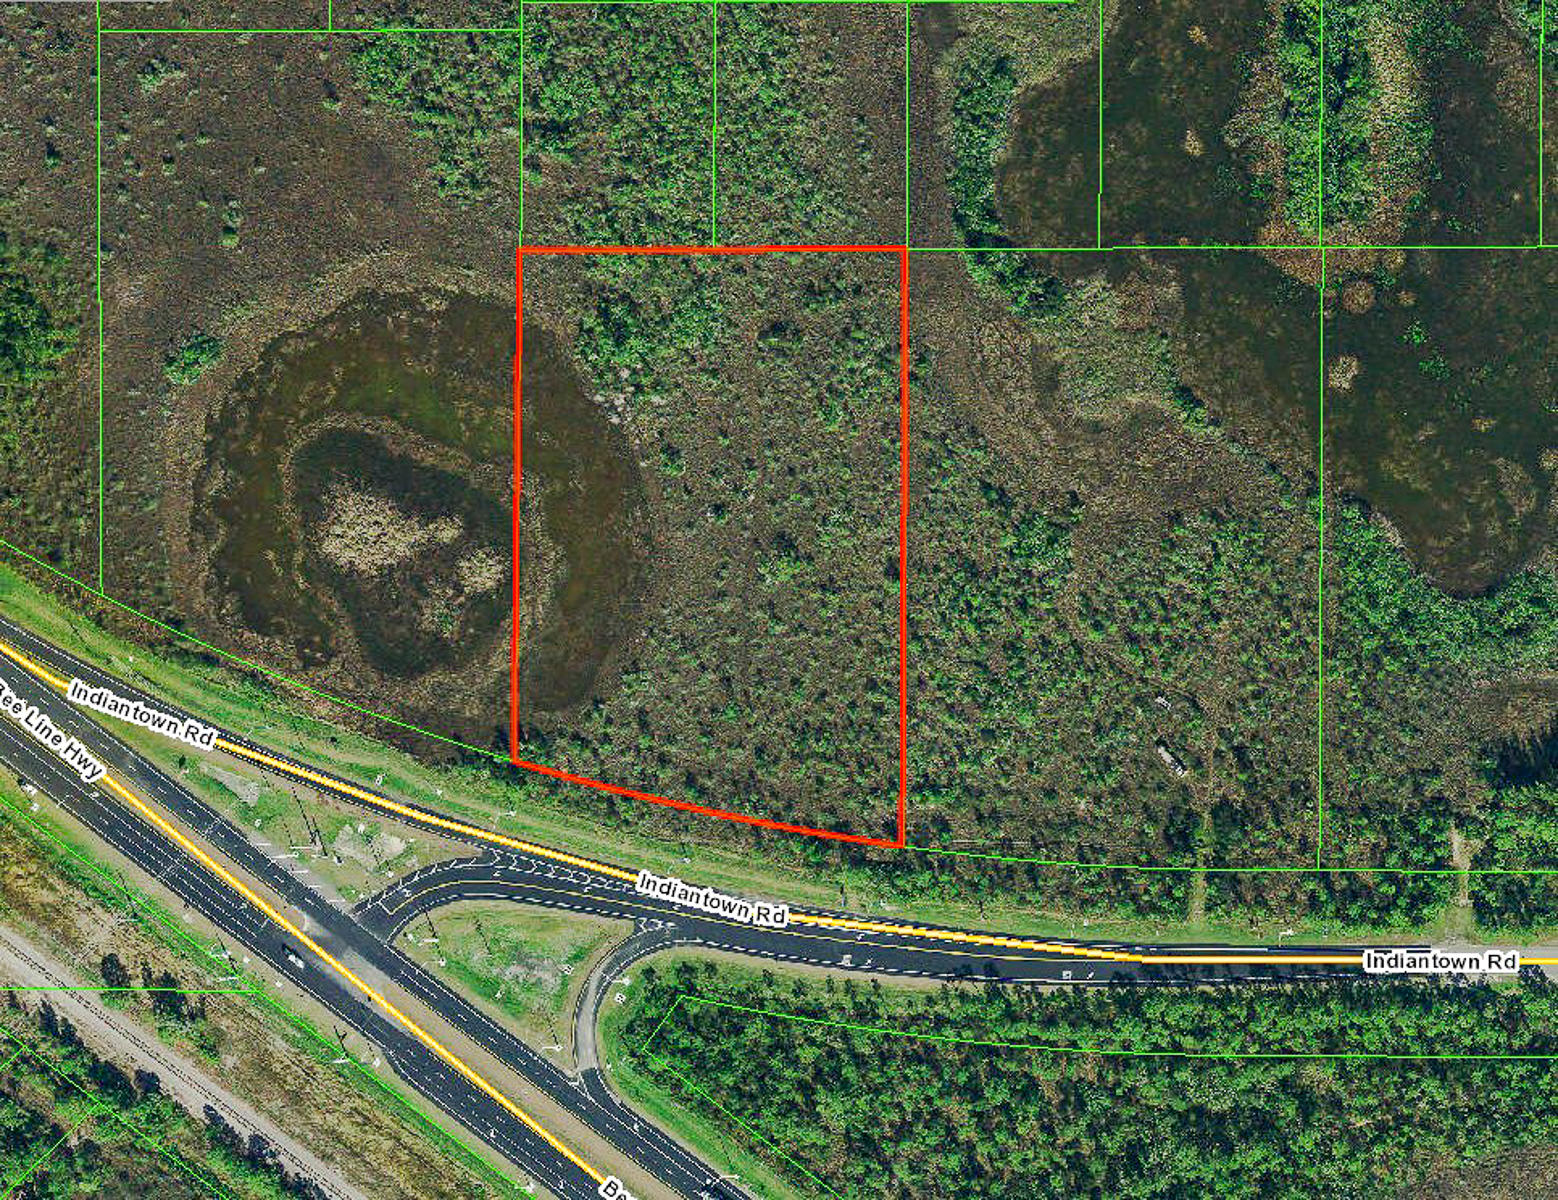 Lot Uu-238 Indiantown, Jupiter, Florida 33478